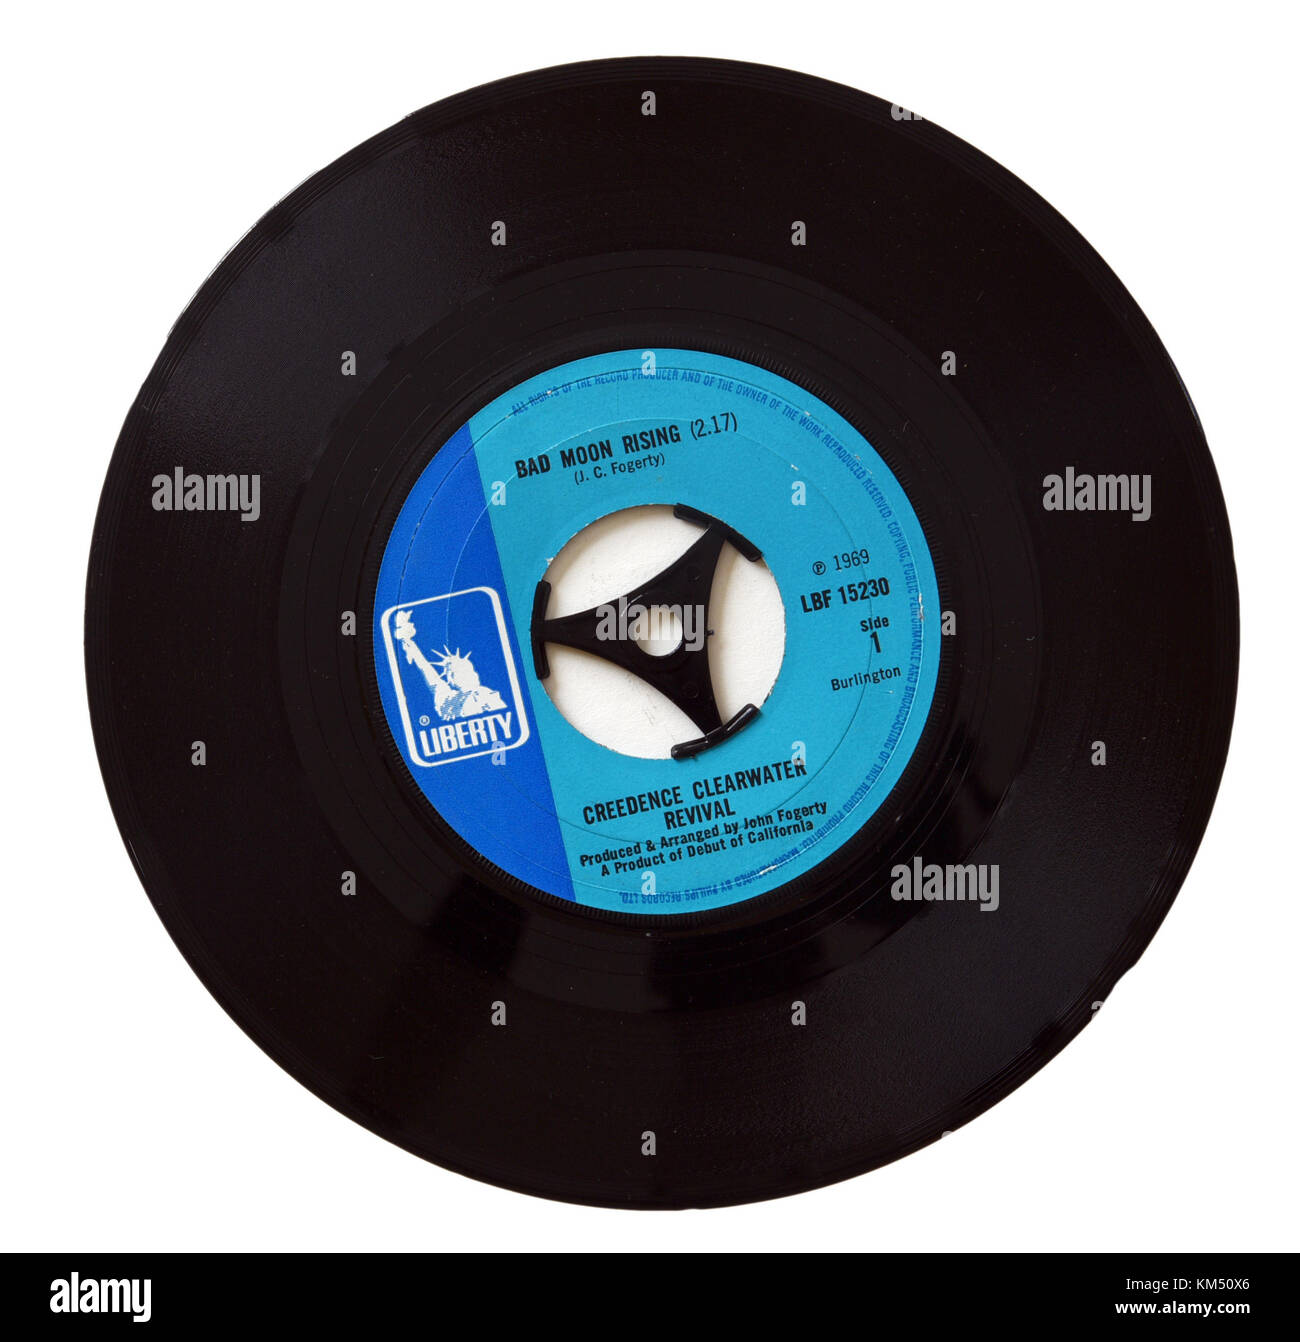 Creedence Clearwater Revival (CCR) Bad Moon Rising single - Stock Image